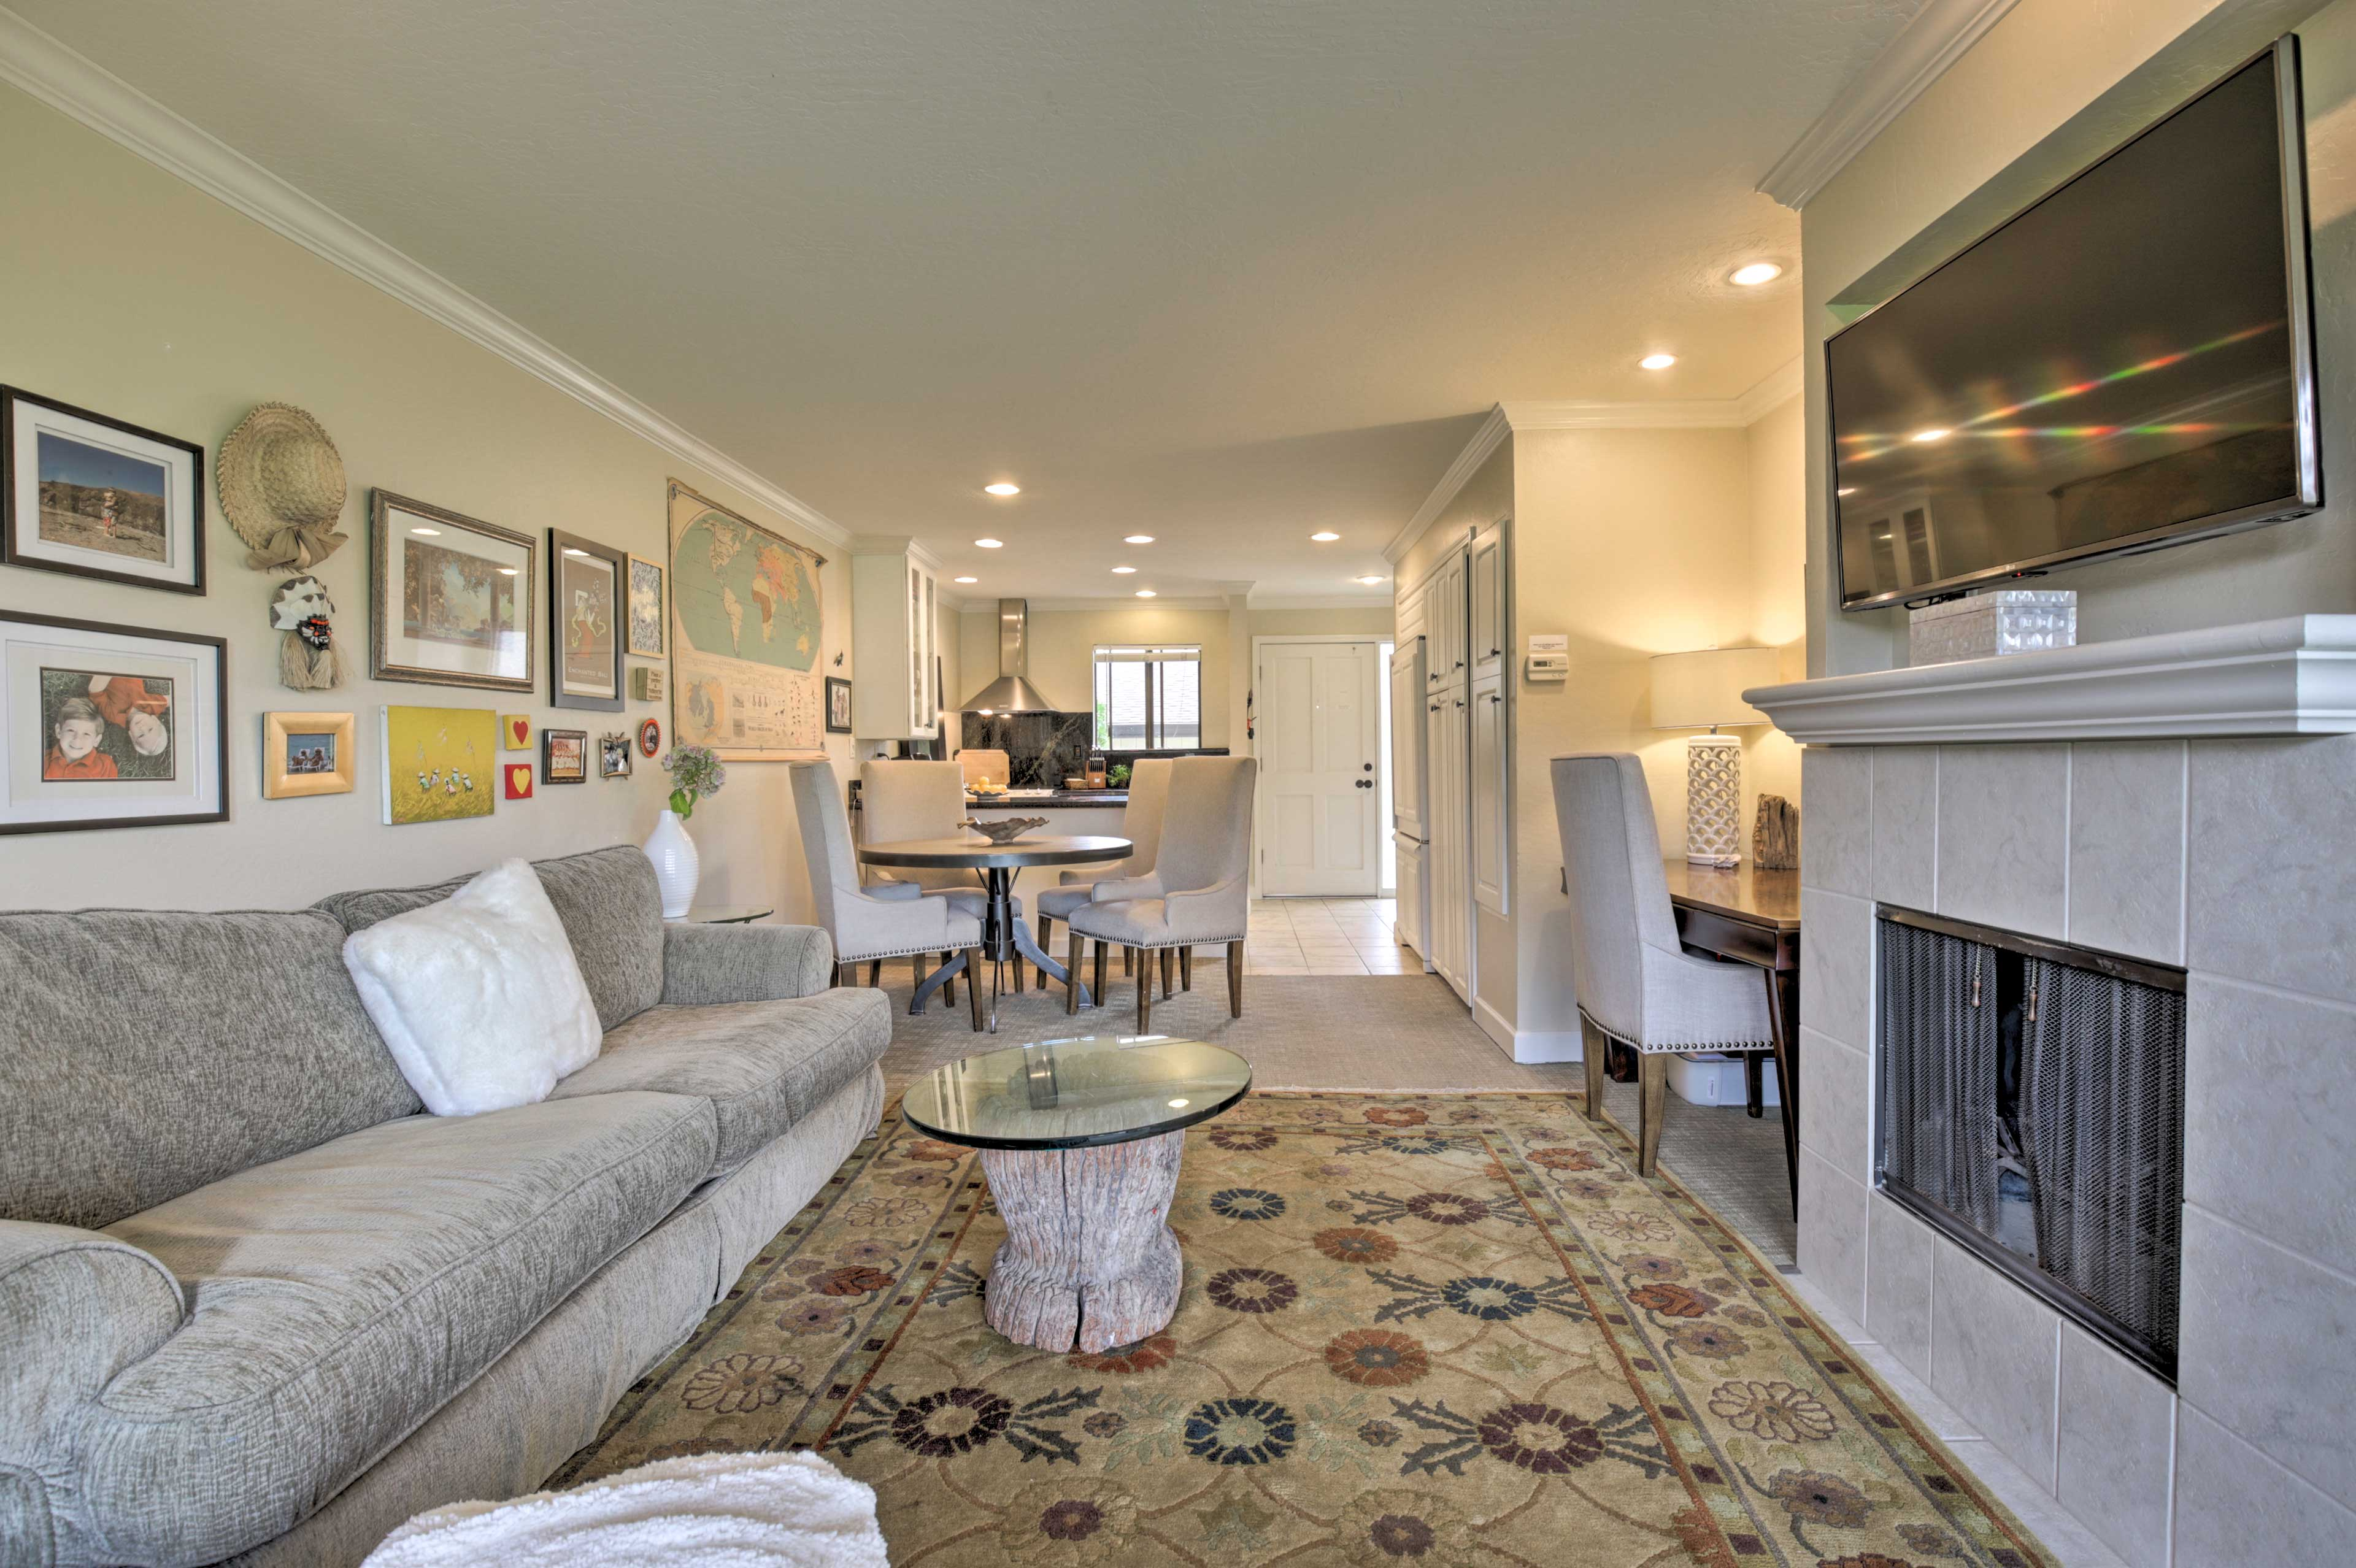 Unwind in the lovely condo featuring elegant furnishings and tasteful decor.